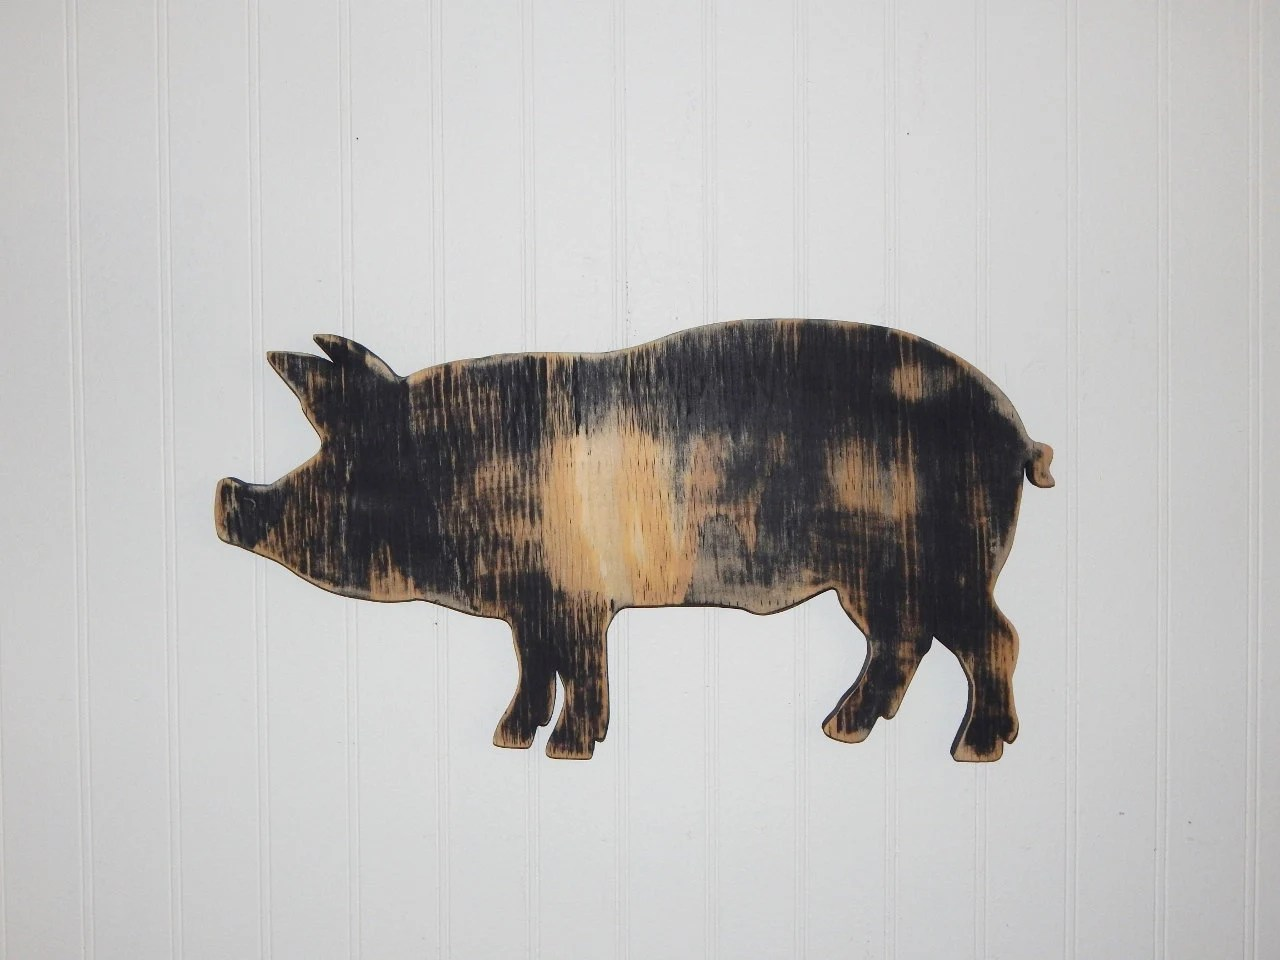 pig kitchen ceramic tile for sign wall decor farmhouse country wooden etsy